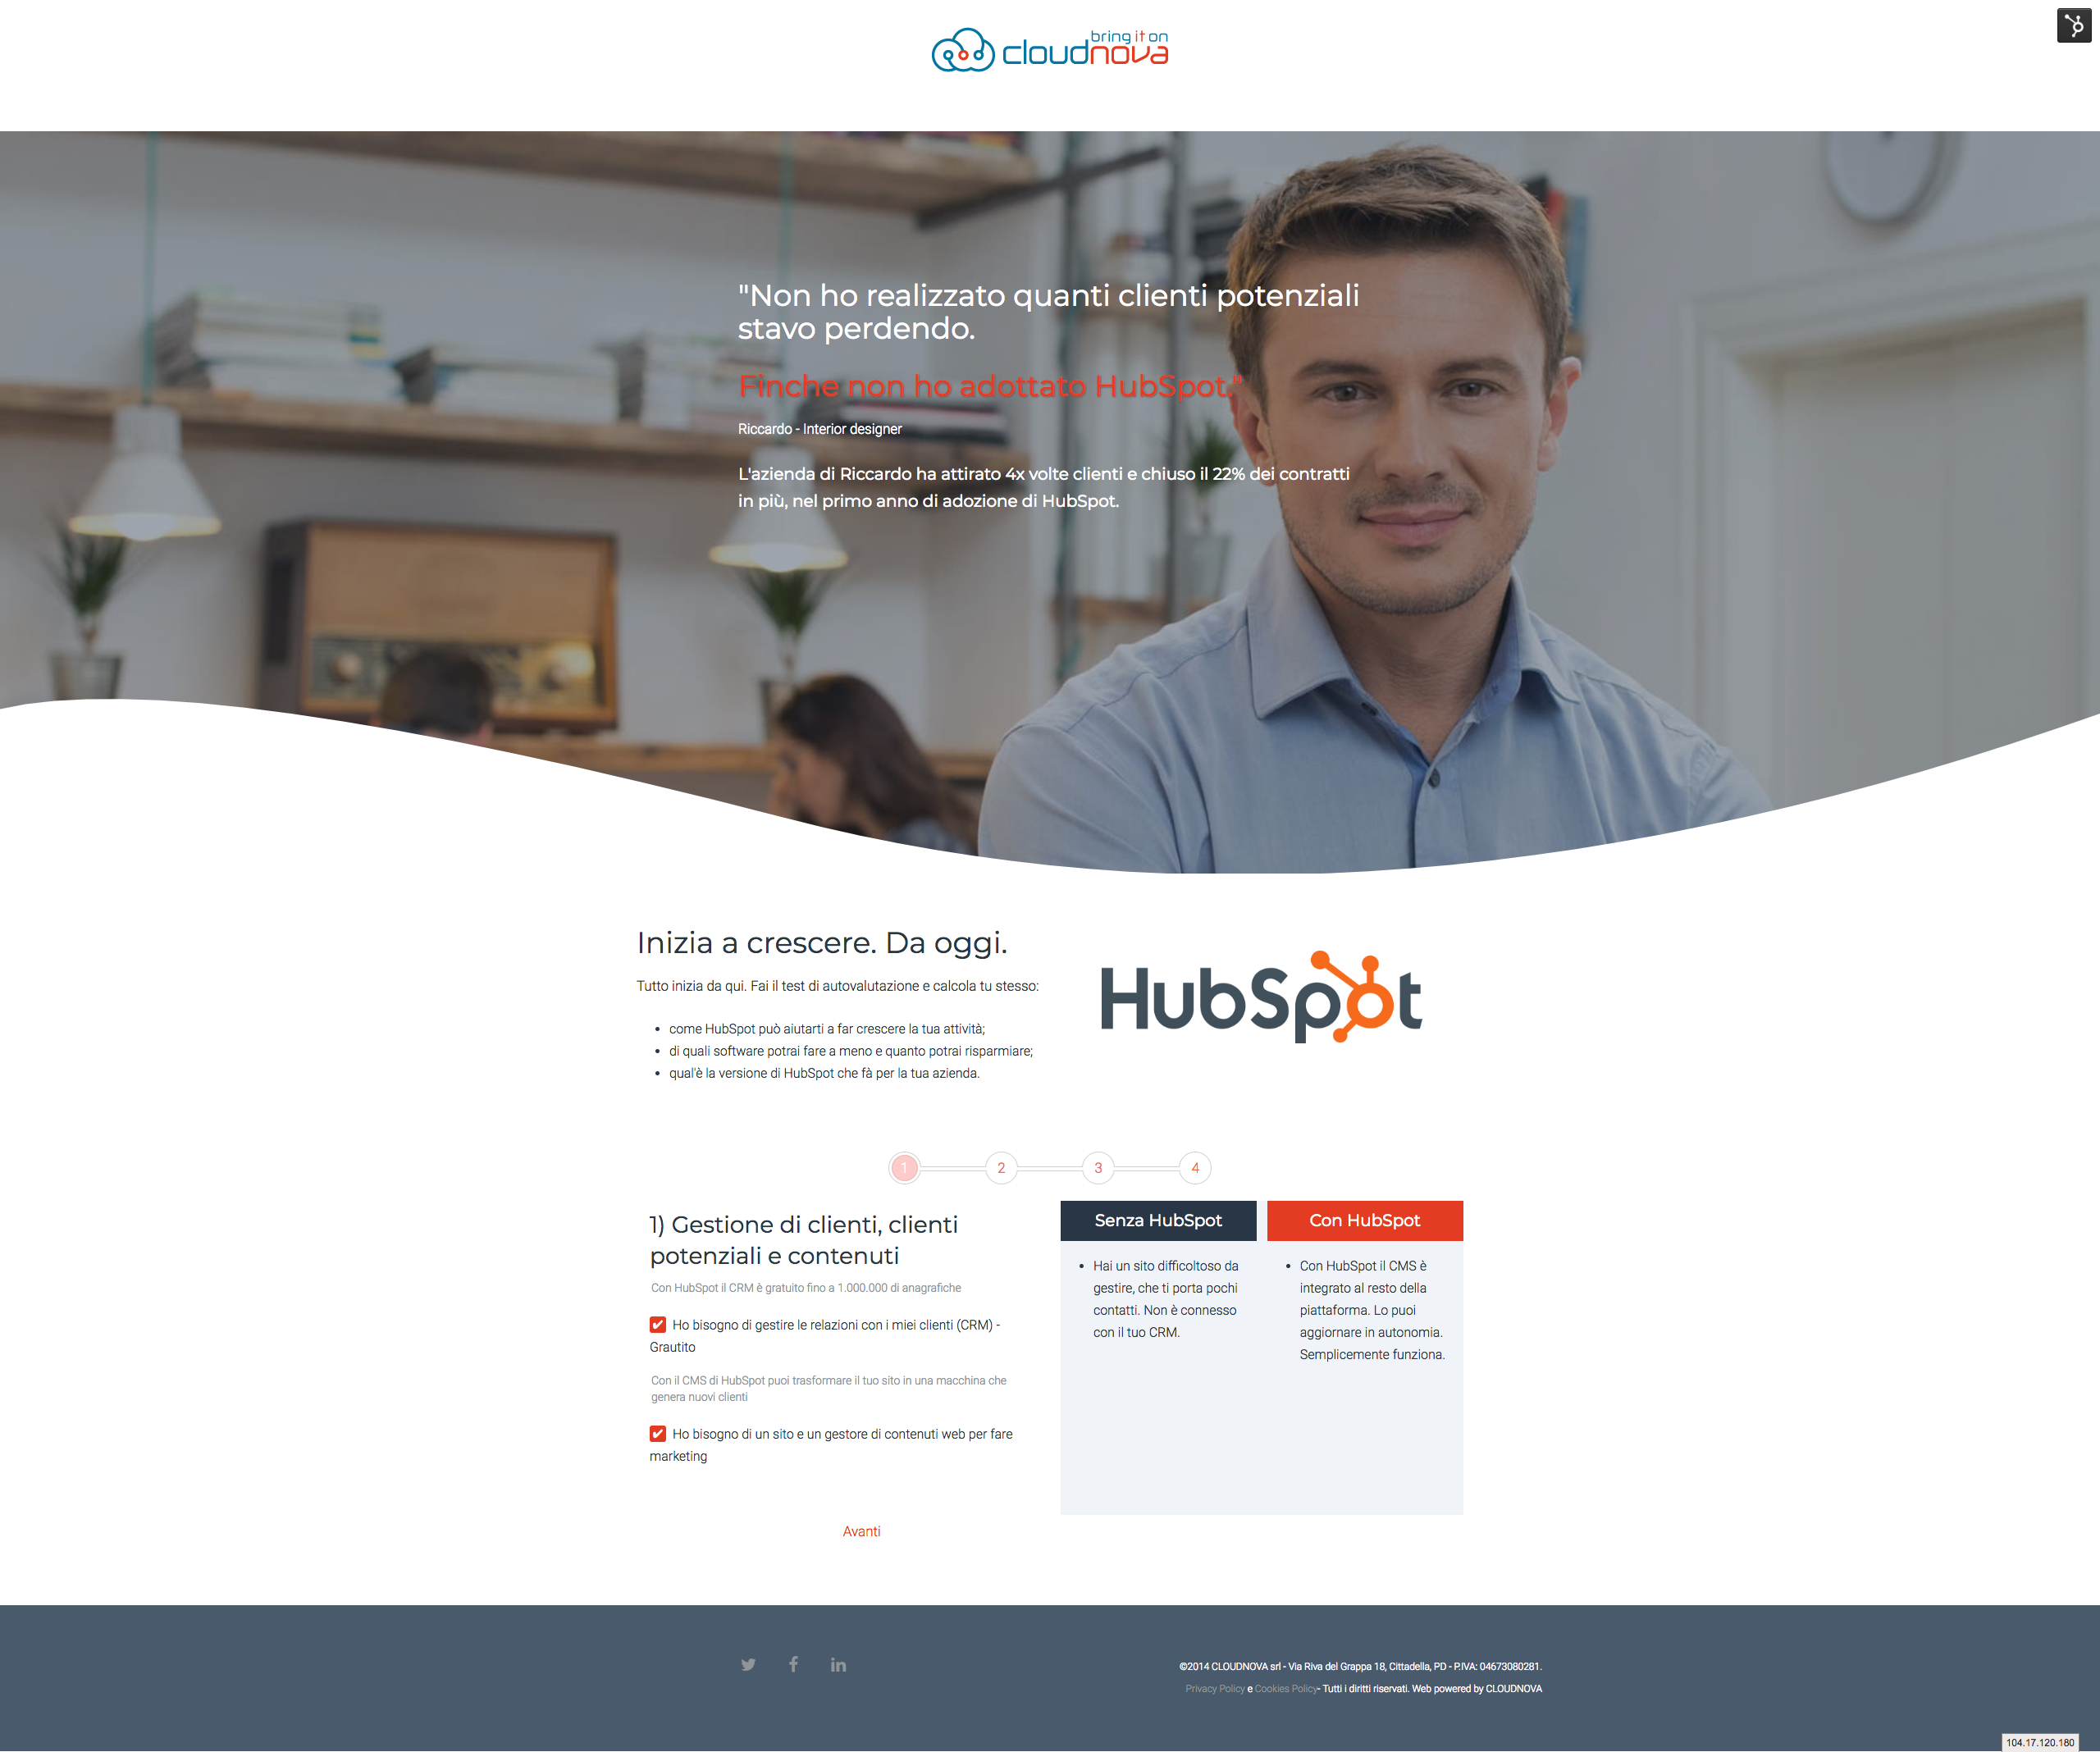 screencapture-cloudnova-it-autovalutazione-hubspot-2018-08-30-17_59_52